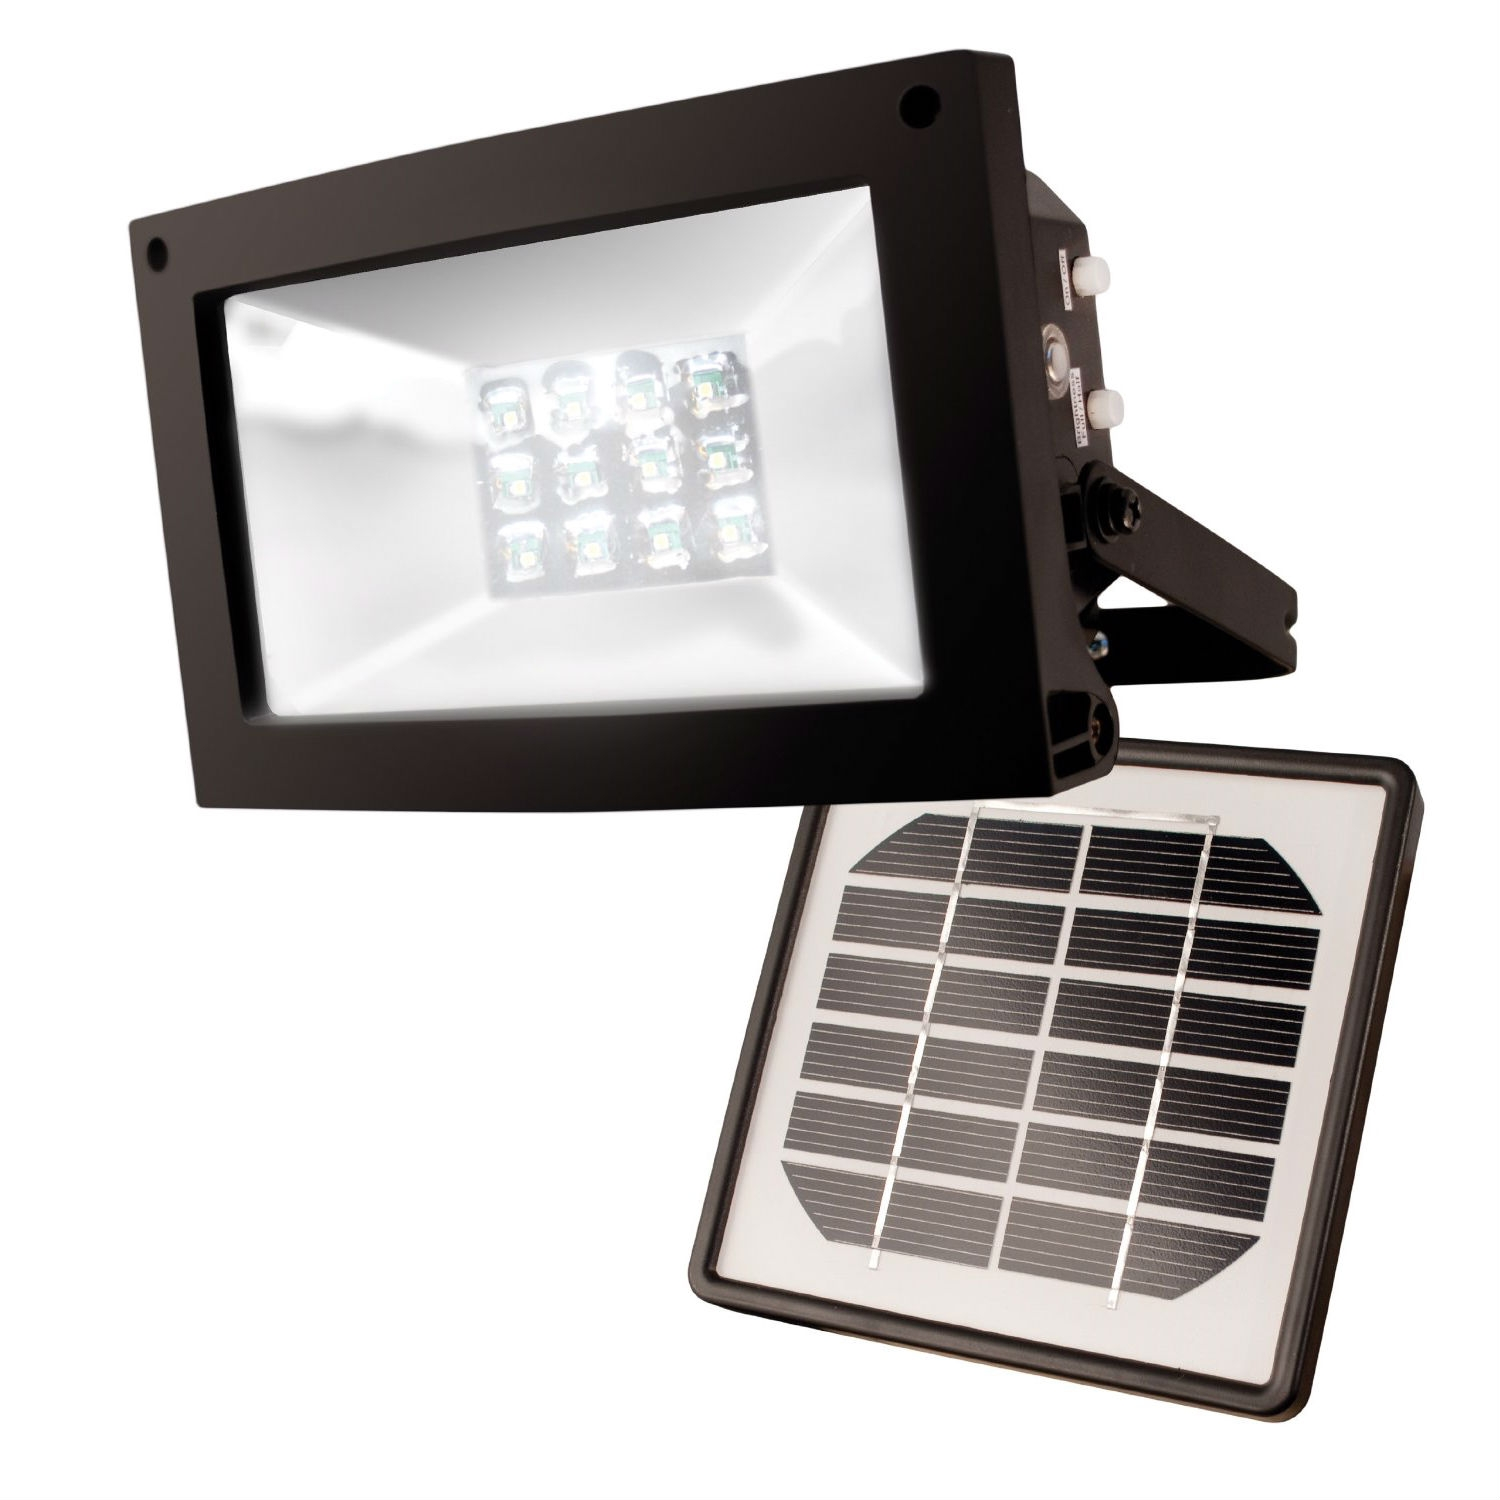 Solar Powered 10-Hour Flood Light - Automatically Turns On at Night, MSF37435 :  Need to light up a sign or flag at night? Maybe a shrubbery or statuary? No need to call an electrician. This Solar Powered 10-Hour Flood Light - Automatically Turns On at Night is the answer. The MAXSA Solar-Powered Floodlight has 12 super-bright LEDs that automatically turn on at dusk. Includes 3 rechargeable NiMH batteries, solar charging panel, and a 10-foot cable. Light stays bright for 5 hours at full power setting, or up to 10 hours in power-saving setting. Metal body. Black finish. Flag or post mount bracket included so the light may be attached directly to a post or flagpole. IP44 weatherproof rating. Add a floodlight with no wiring necessary; Uses free energy from the sun to charge the batteries.